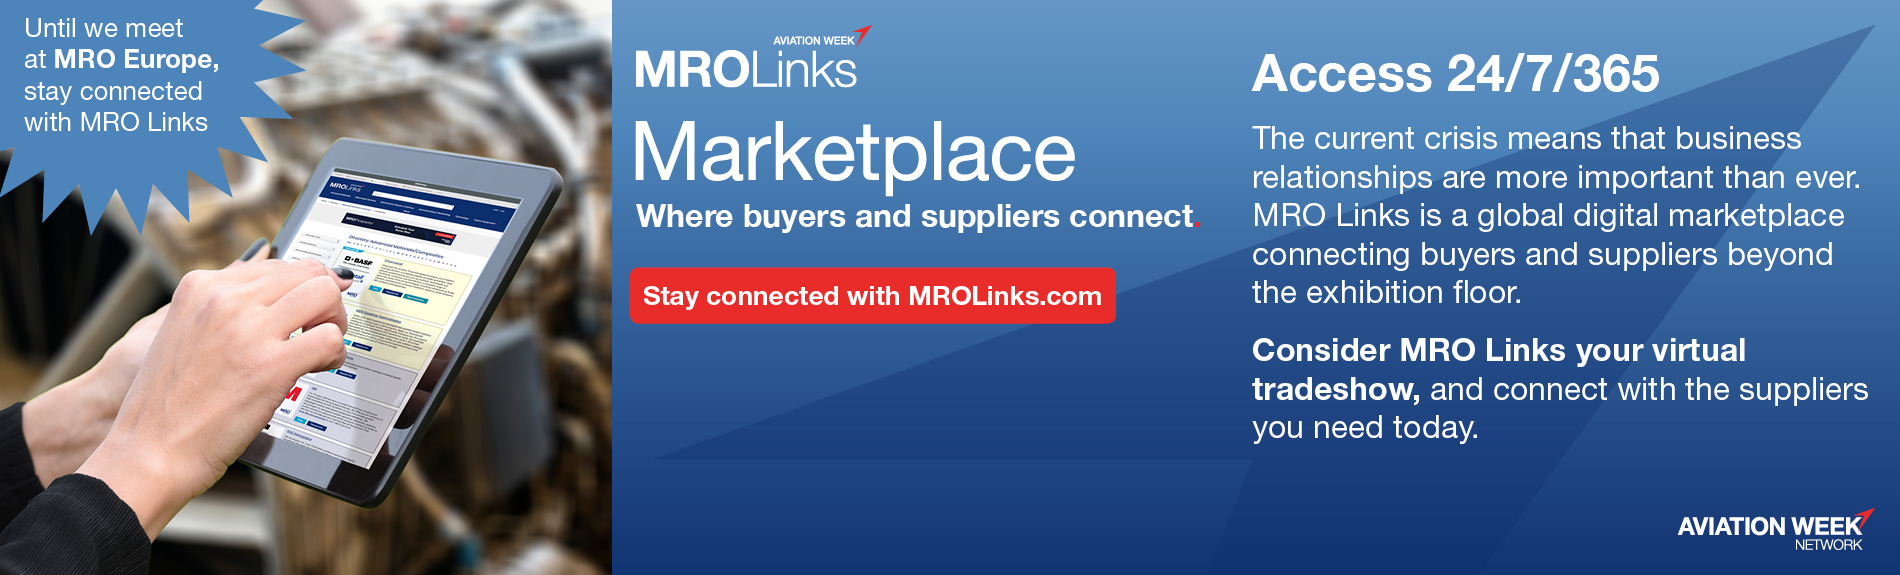 MRO LINKS